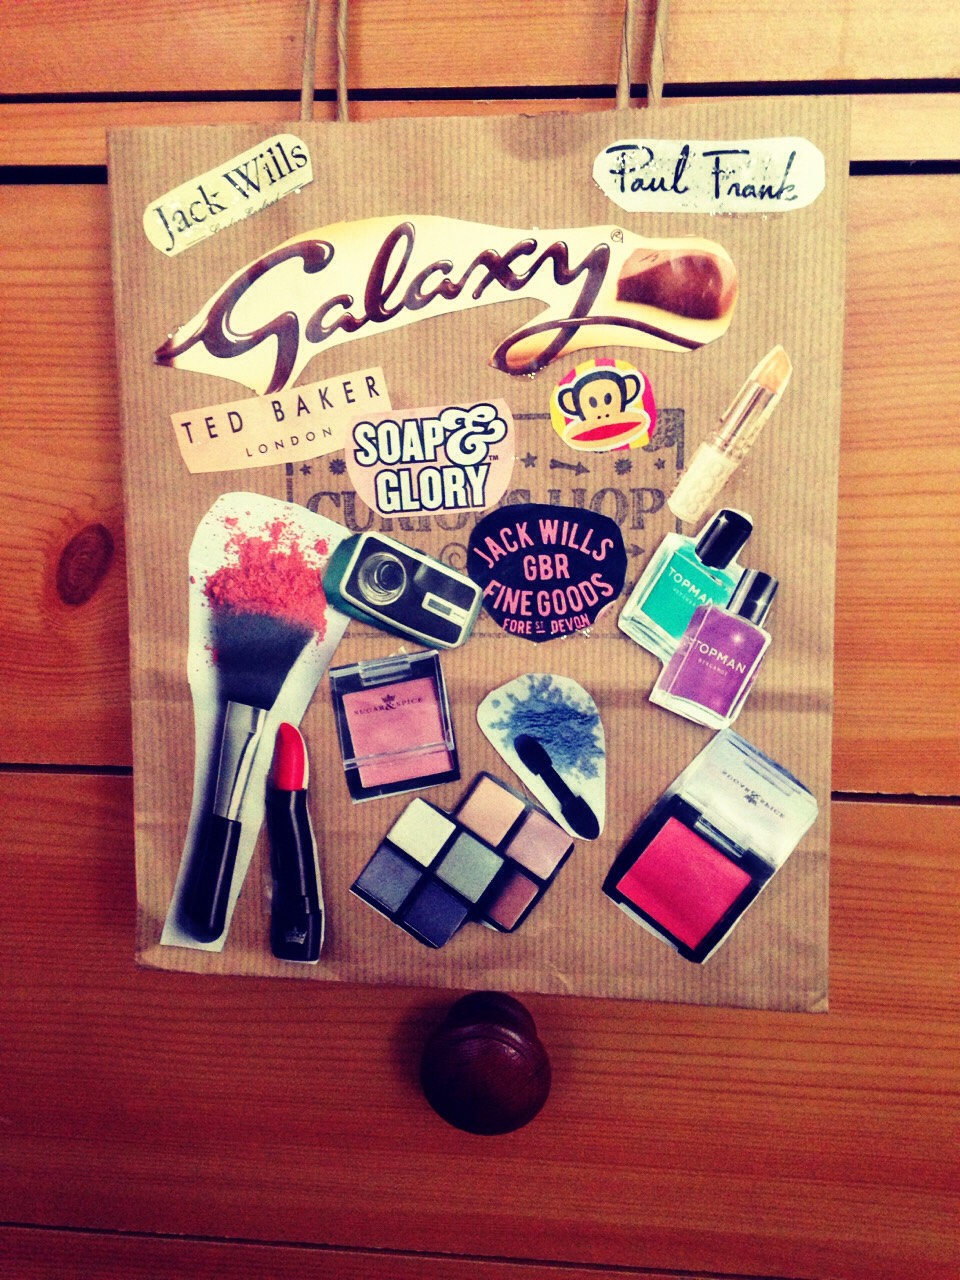 Want to know how to make this cute DIY bags